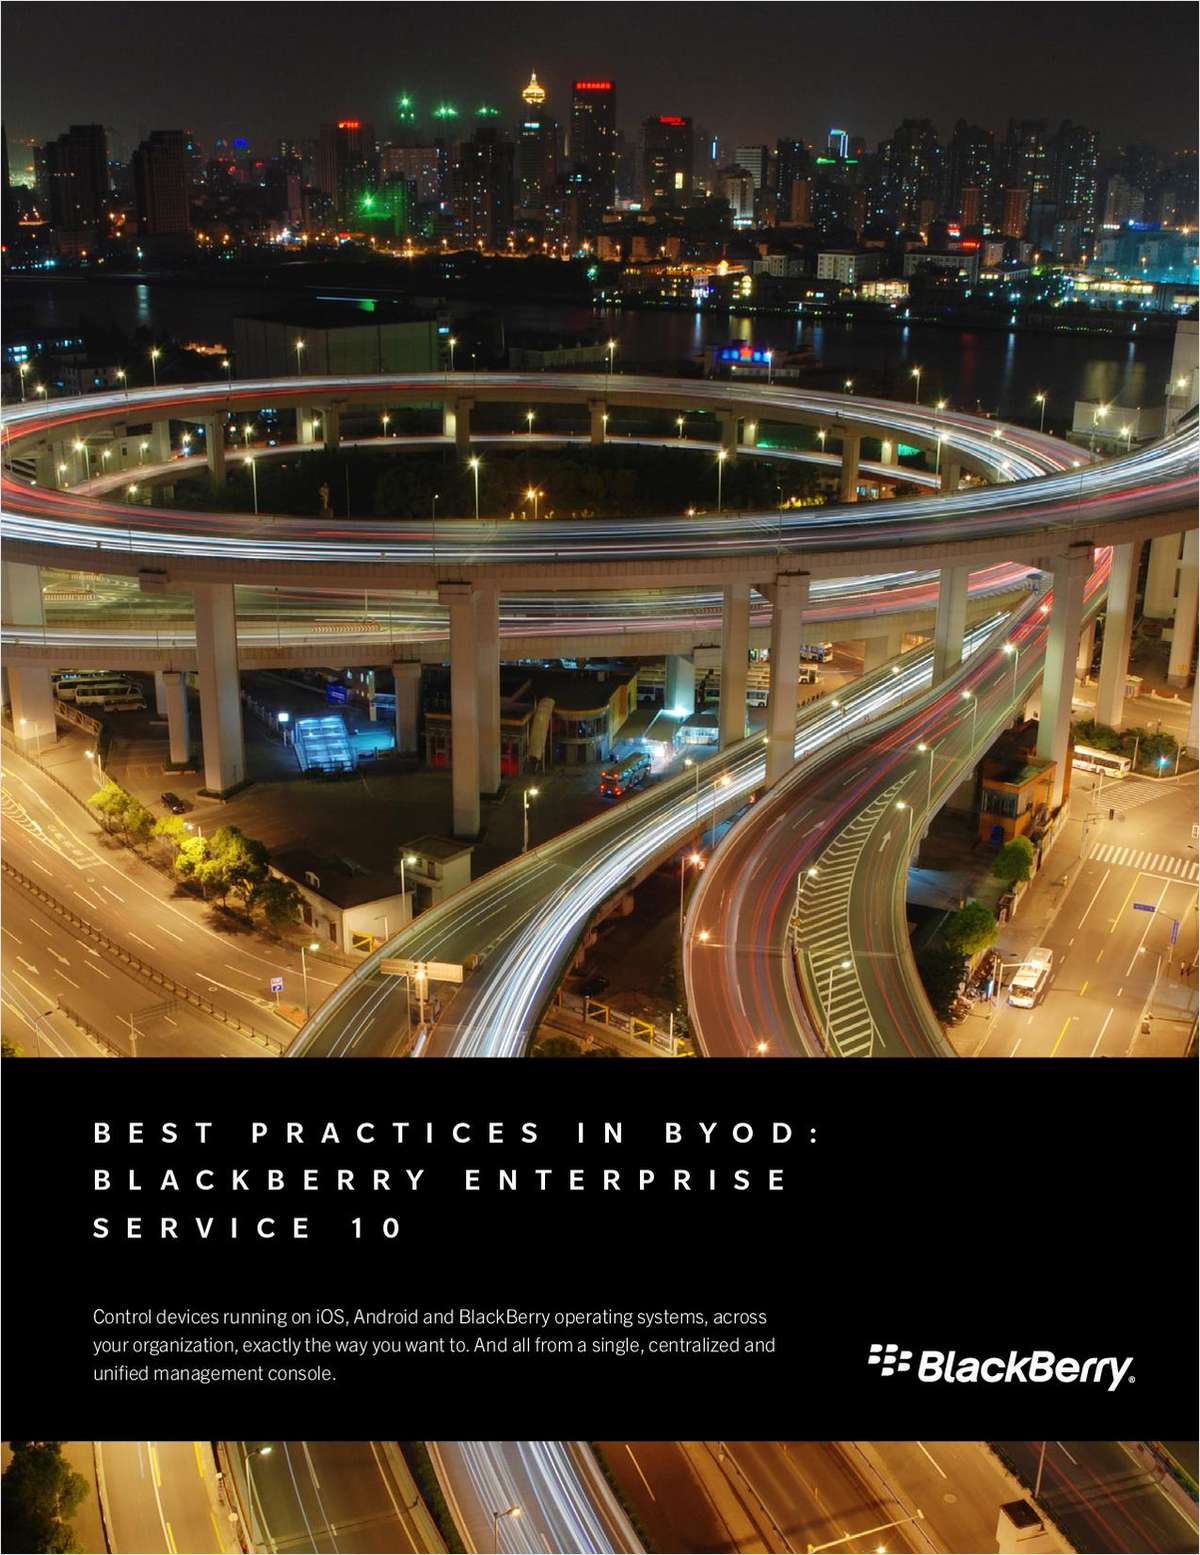 Best Practices in BYOD: BlackBerry Enterprise Service 10